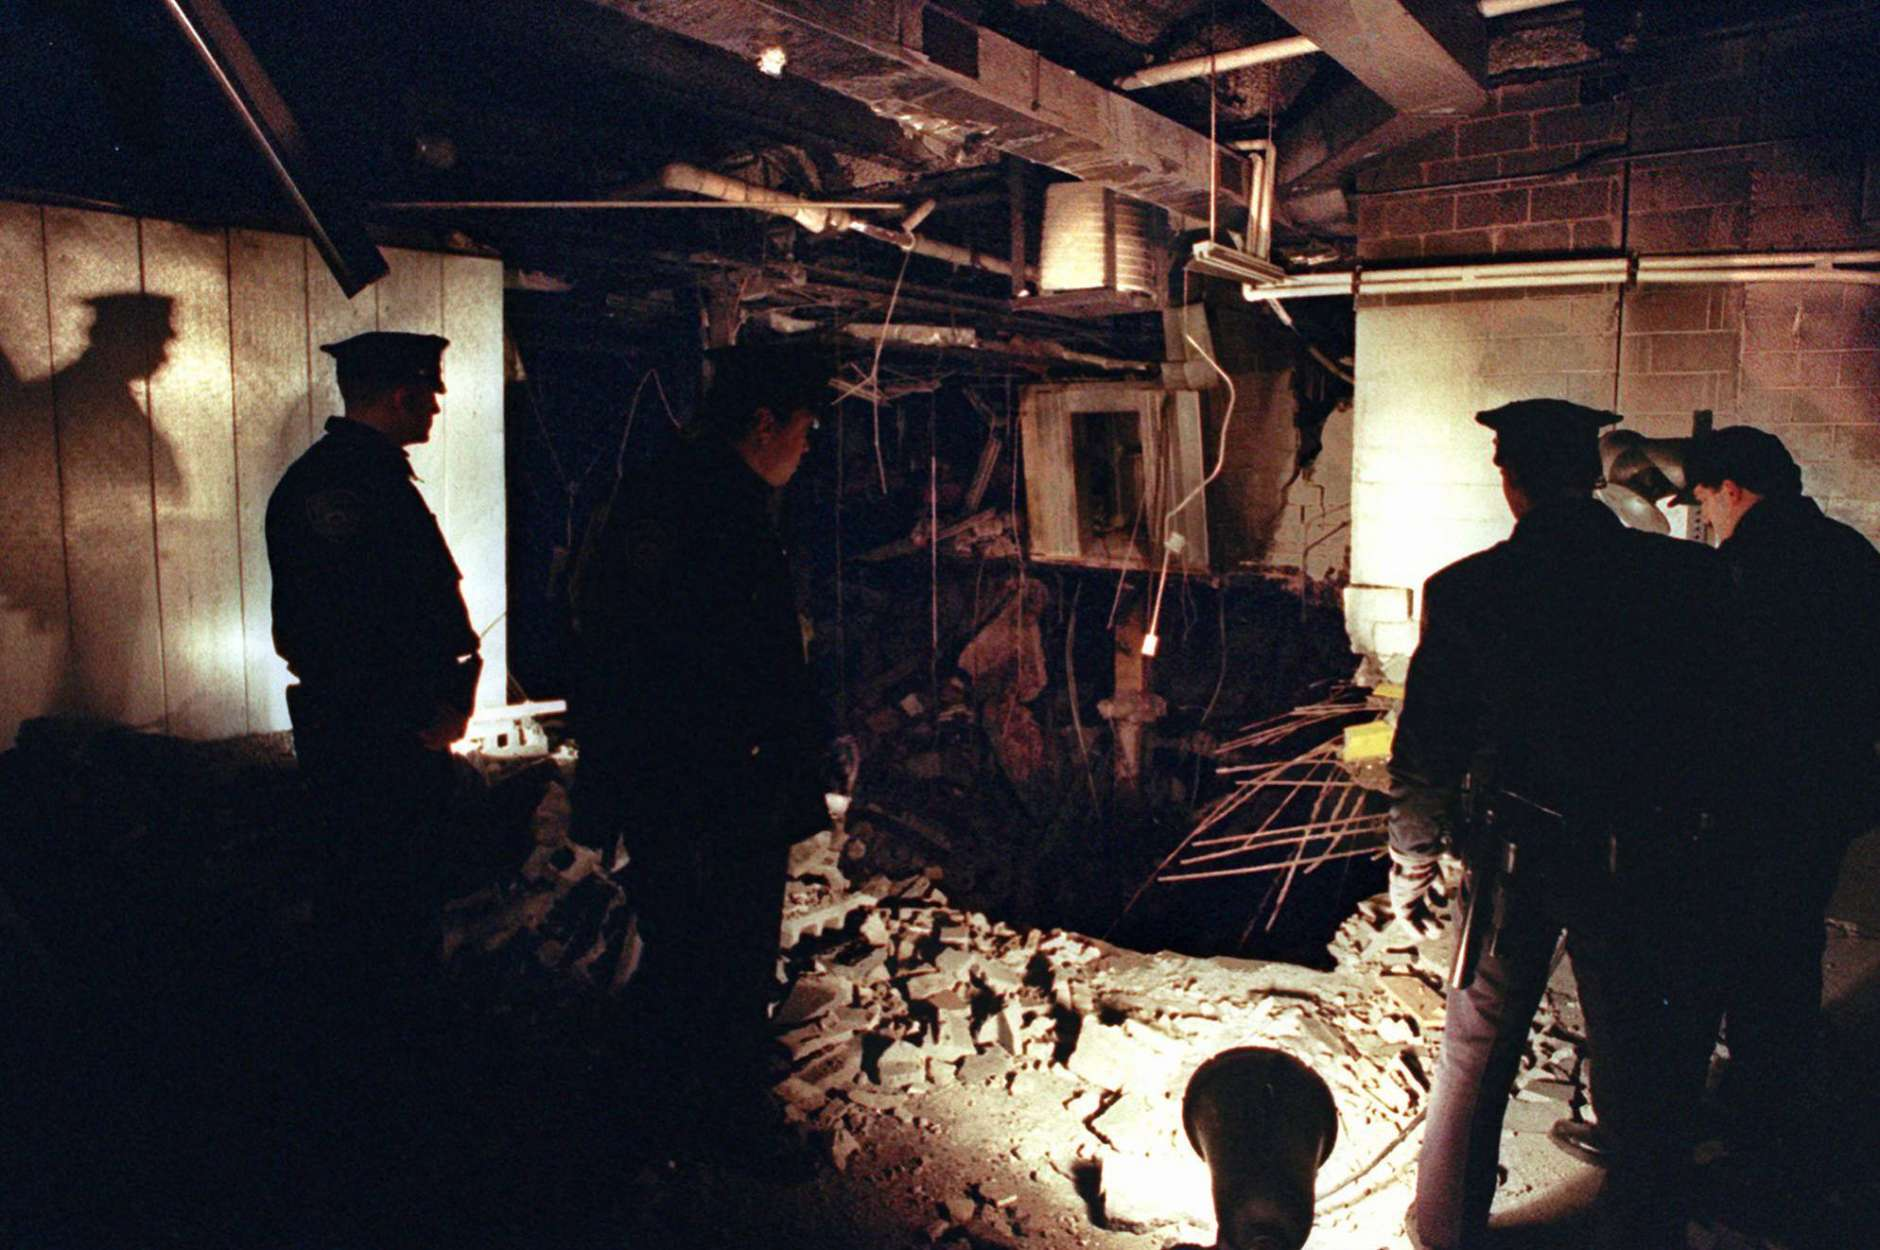 FILE-- In this Feb. 27, 1993 file photo, Port Authority and New York City Police officers view the damage caused by a truck bomb that exploded in the garage of New York's World Trade Center the previous day. The National September 11 Memorial & Museum on Friday, Jan. 26, 2018,  announced the opening of a special installation to commemorate the 25th anniversary of the 1993 truck bombing of the World Trade Center. (AP Photo/Richard Drew, File)